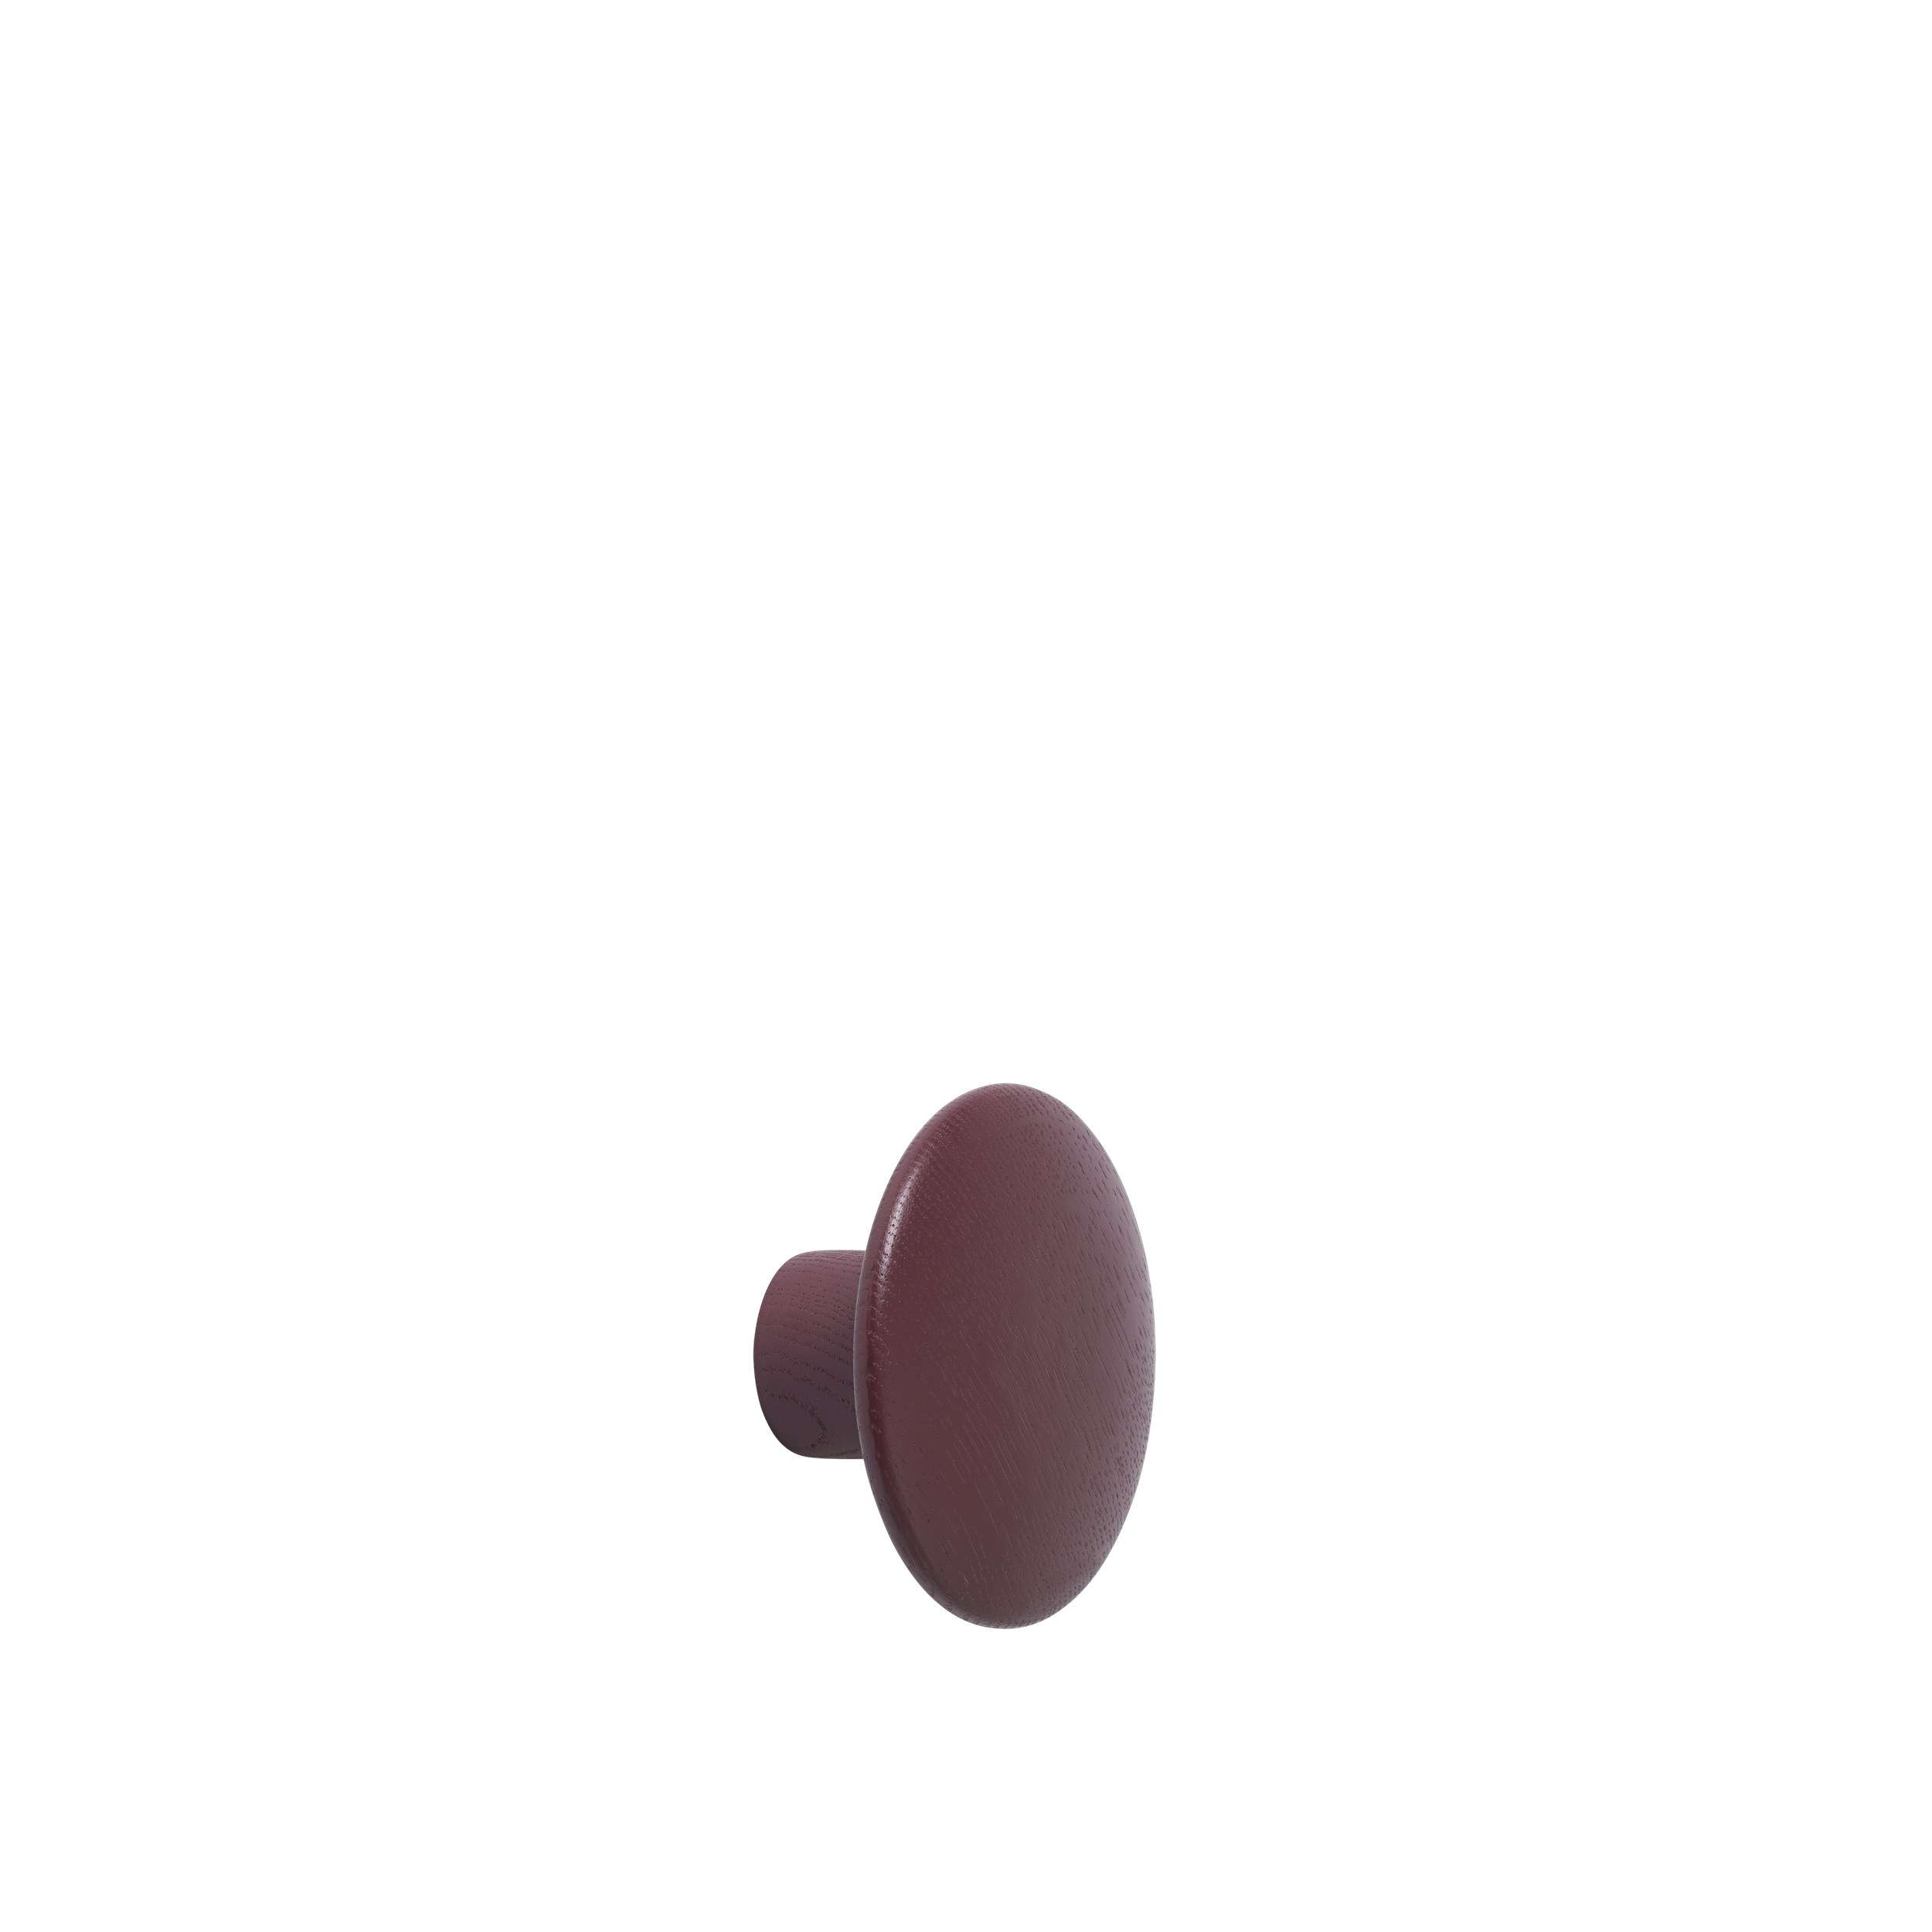 The Dots Muuto Burgundy Small